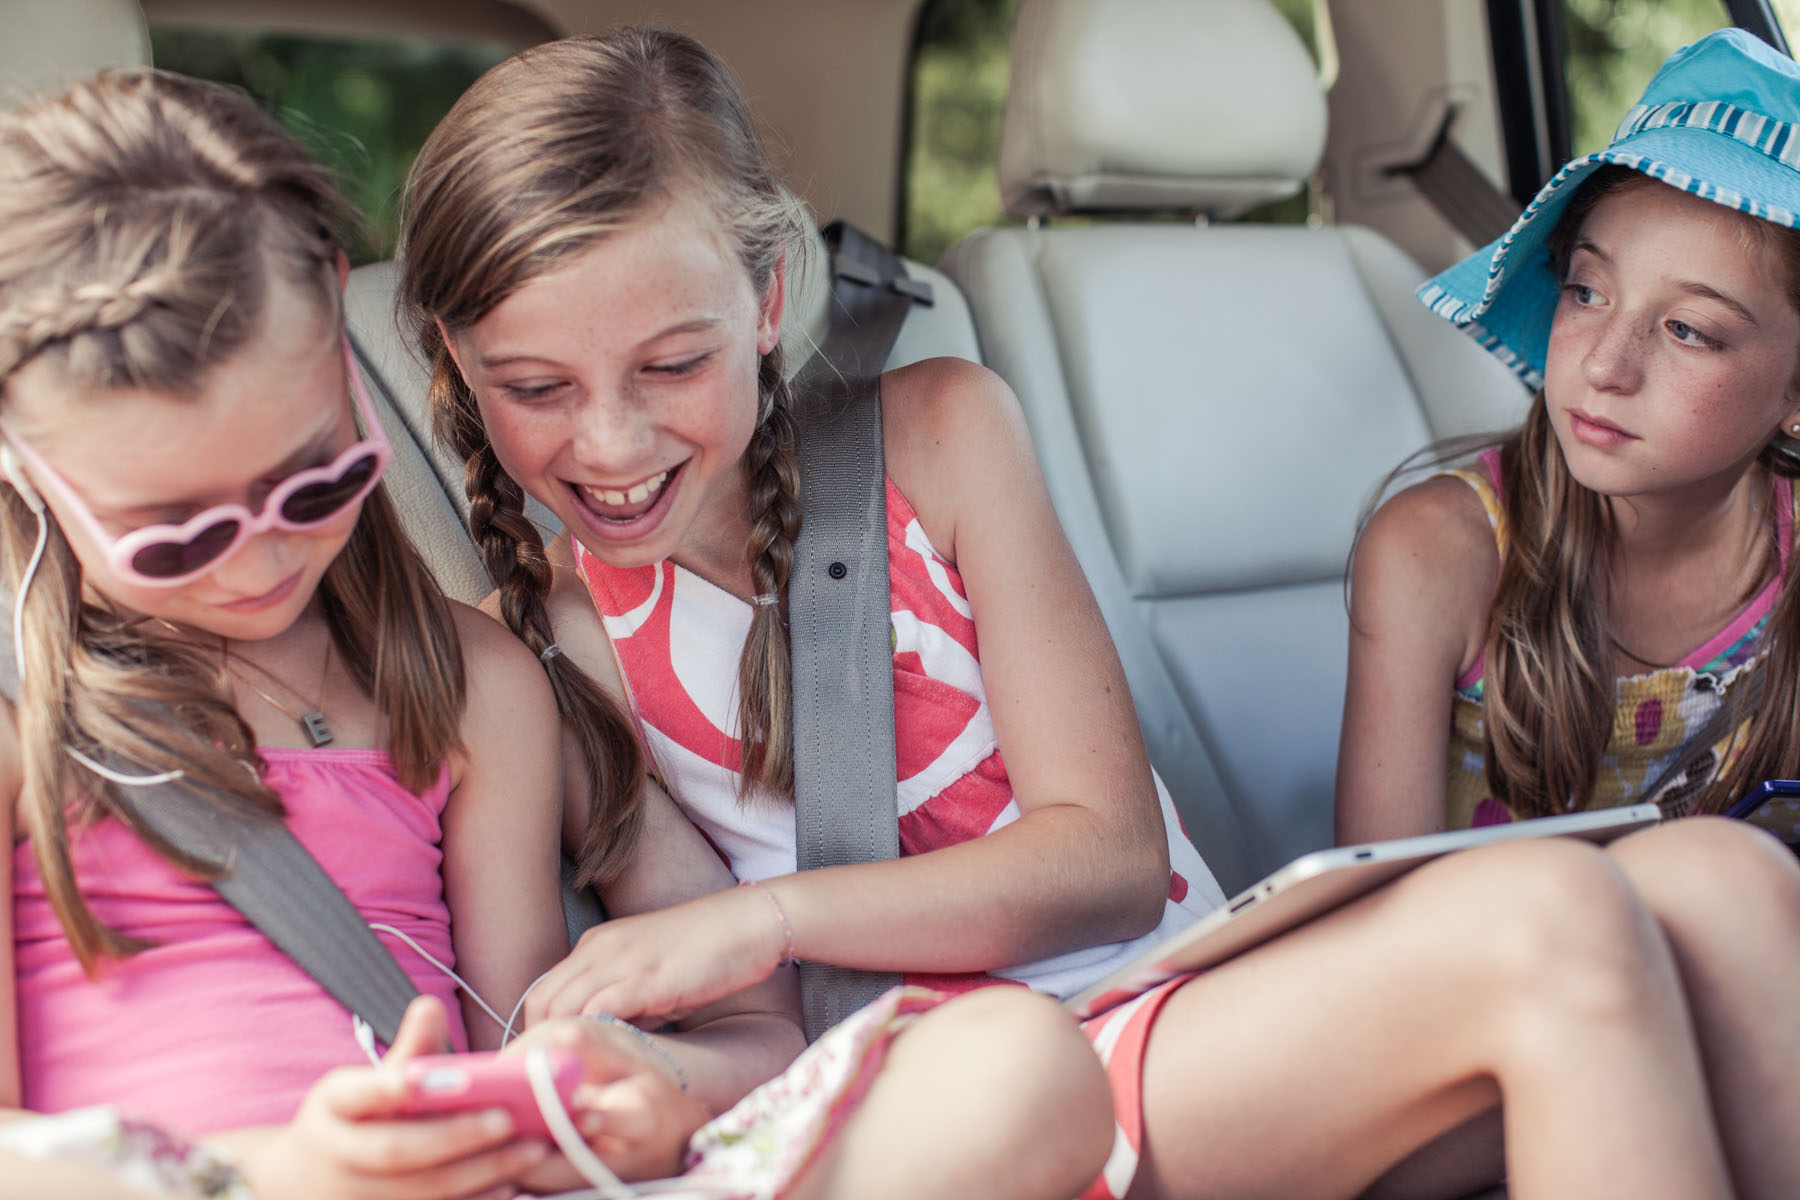 Girls Listening to Music in the Car